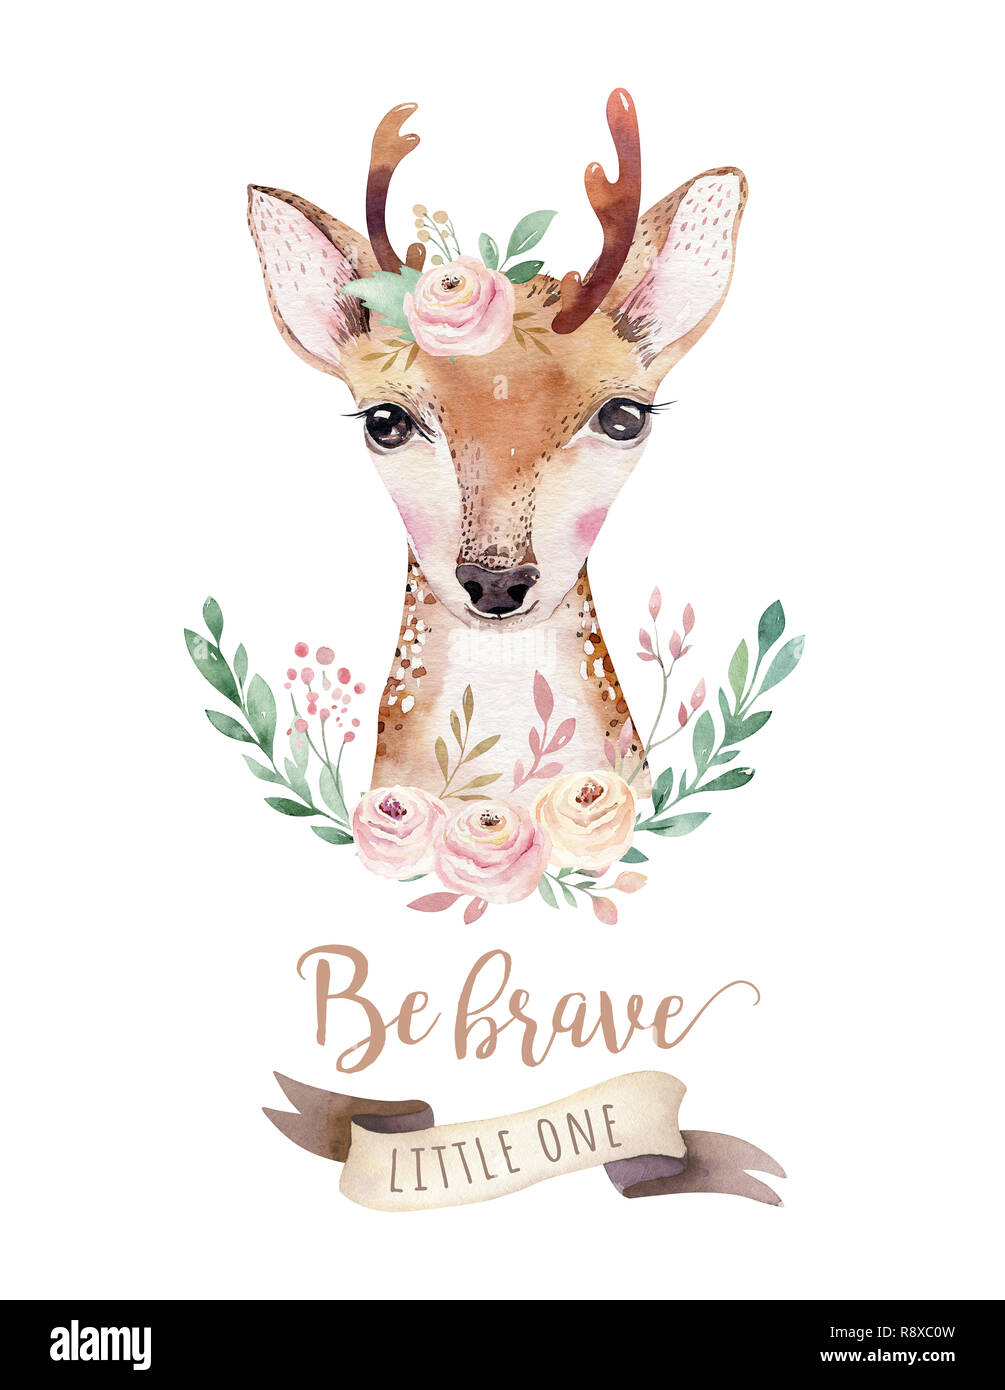 watercolor forest cartoon isolated cute baby deer animal with flowers nursery woodland illustration bohemian boho drawing for nursery poster patter stock photo alamy https www alamy com watercolor forest cartoon isolated cute baby deer animal with flowers nursery woodland illustration bohemian boho drawing for nursery poster patter image229232217 html